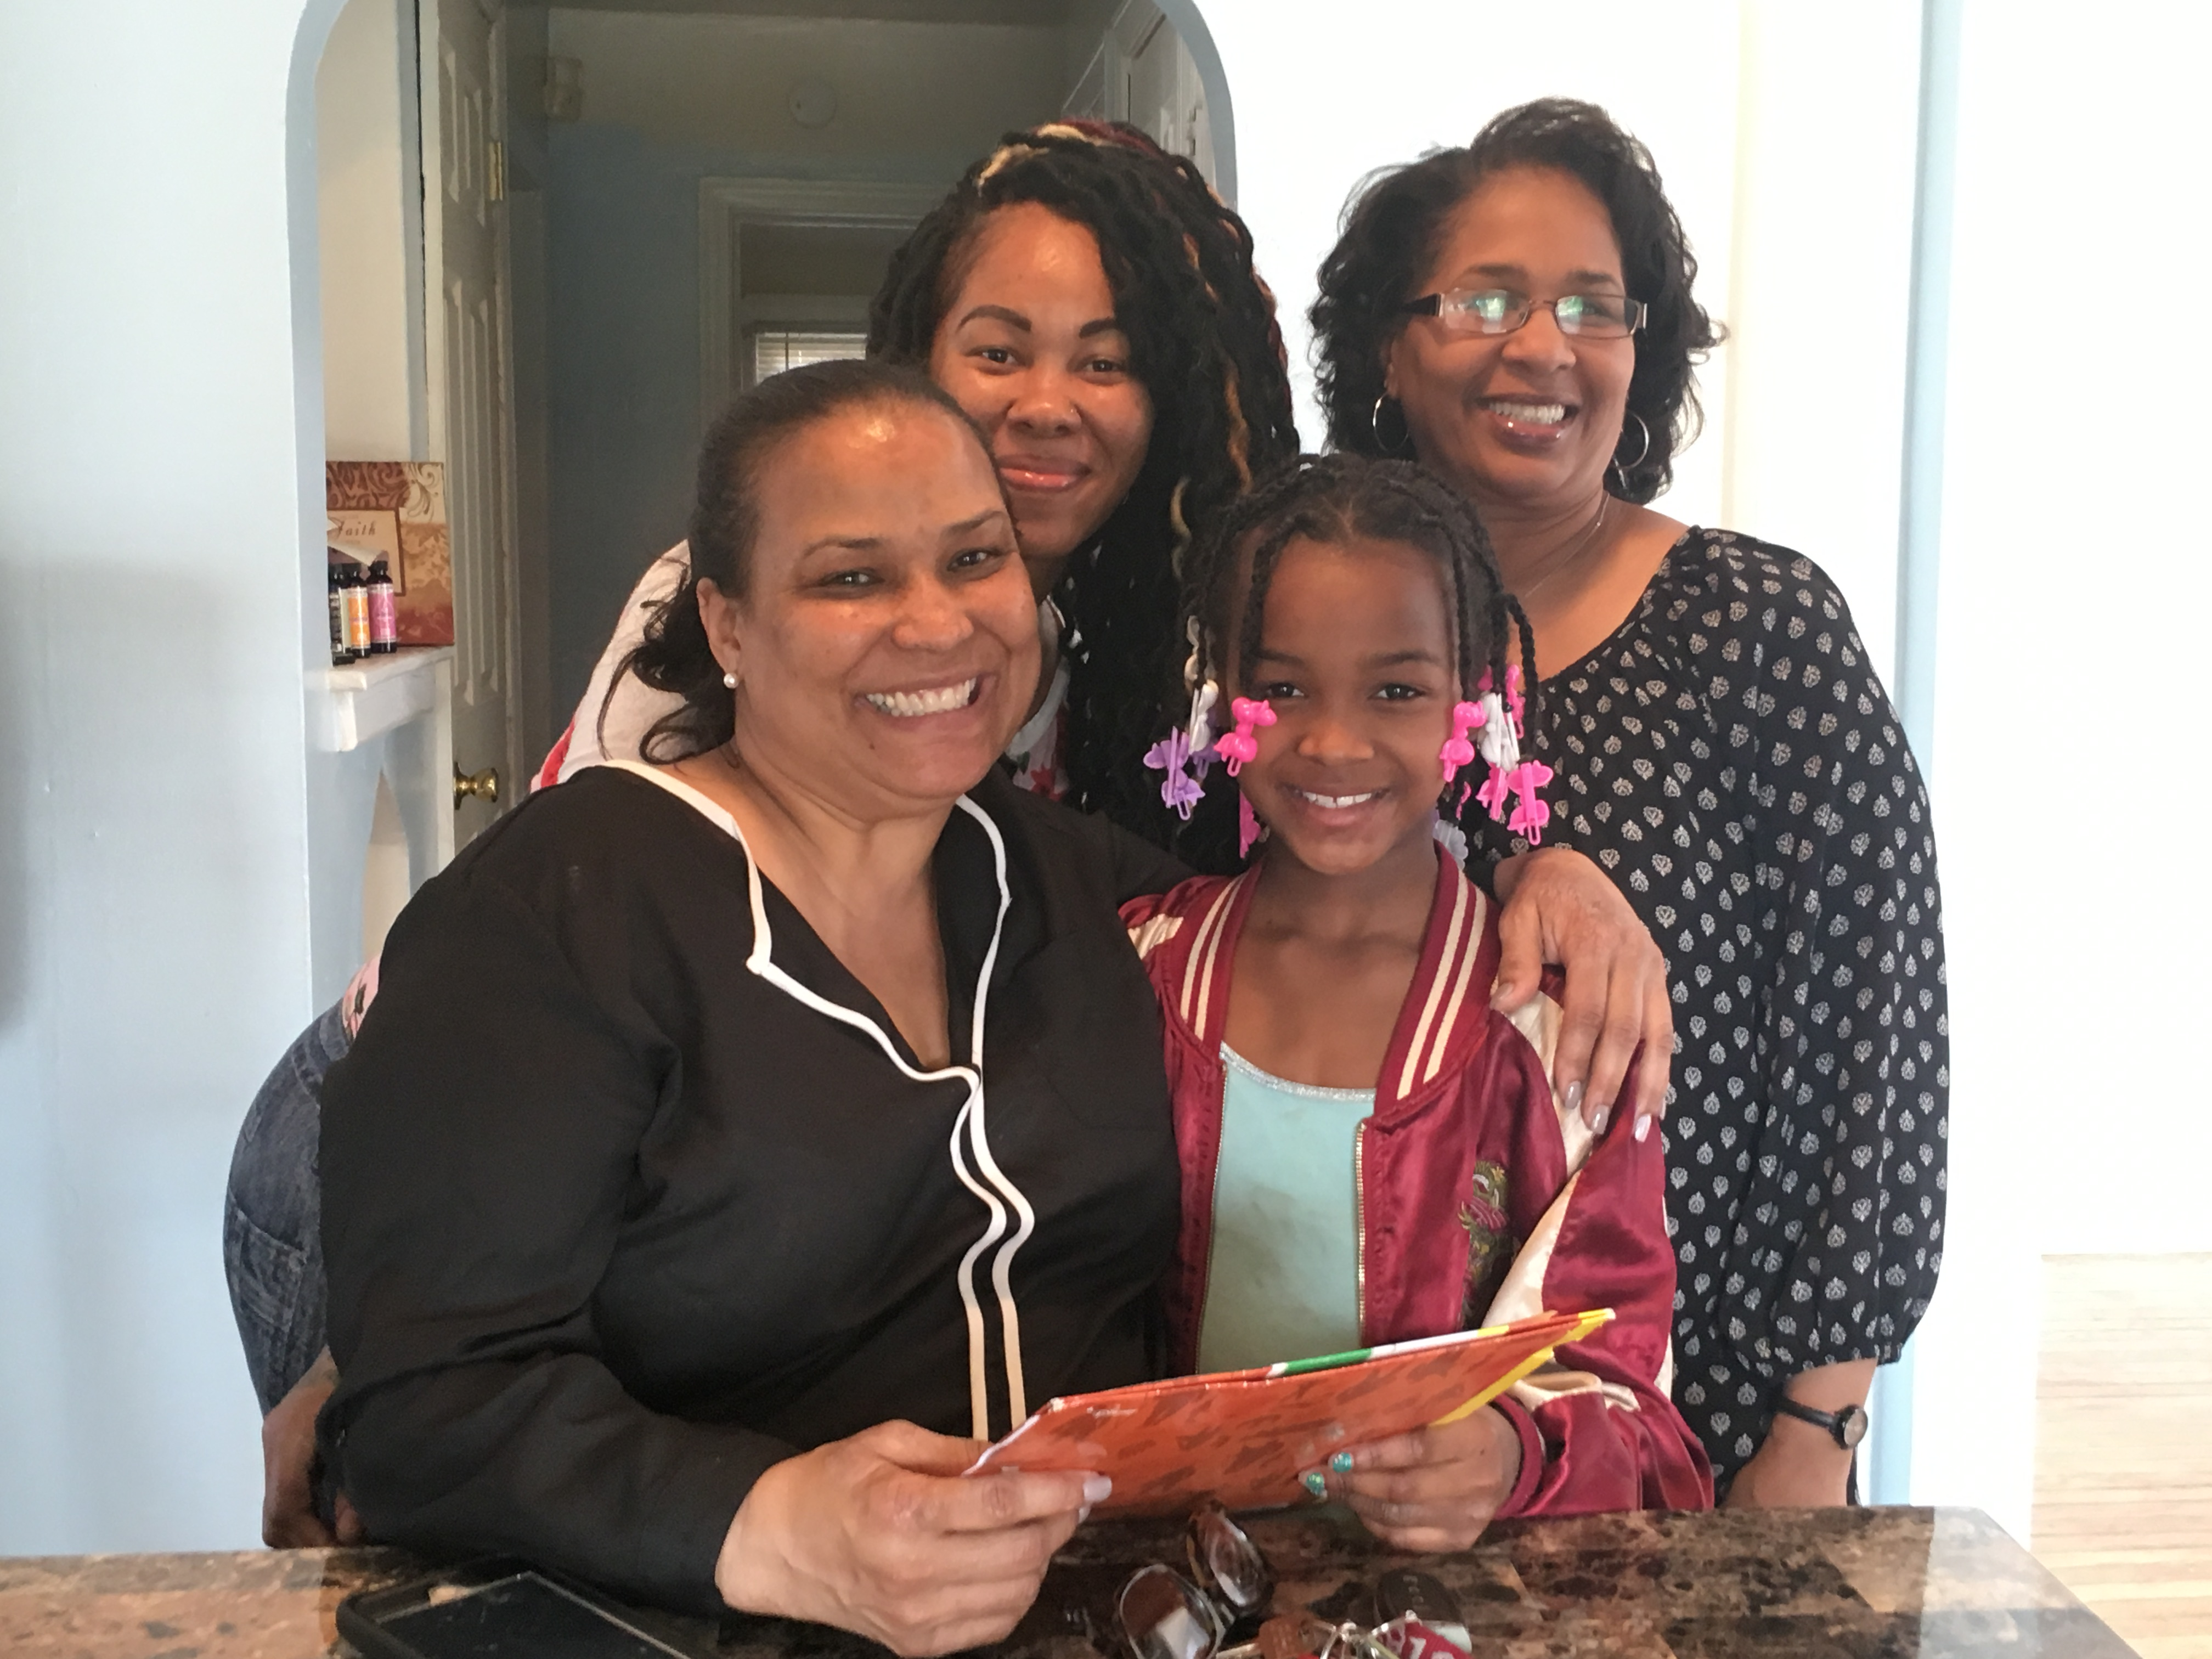 """Coleman A. Young Elementary School Principal Melissa Scott (left) and teacher Melanie Wallace (right) paid a visit to the home of Brenda Hutchins and her daughter Samantha Hutchins to discuss ways the school can help the family succeed. """"We see how hard you're working, mama!"""" Scott told her."""